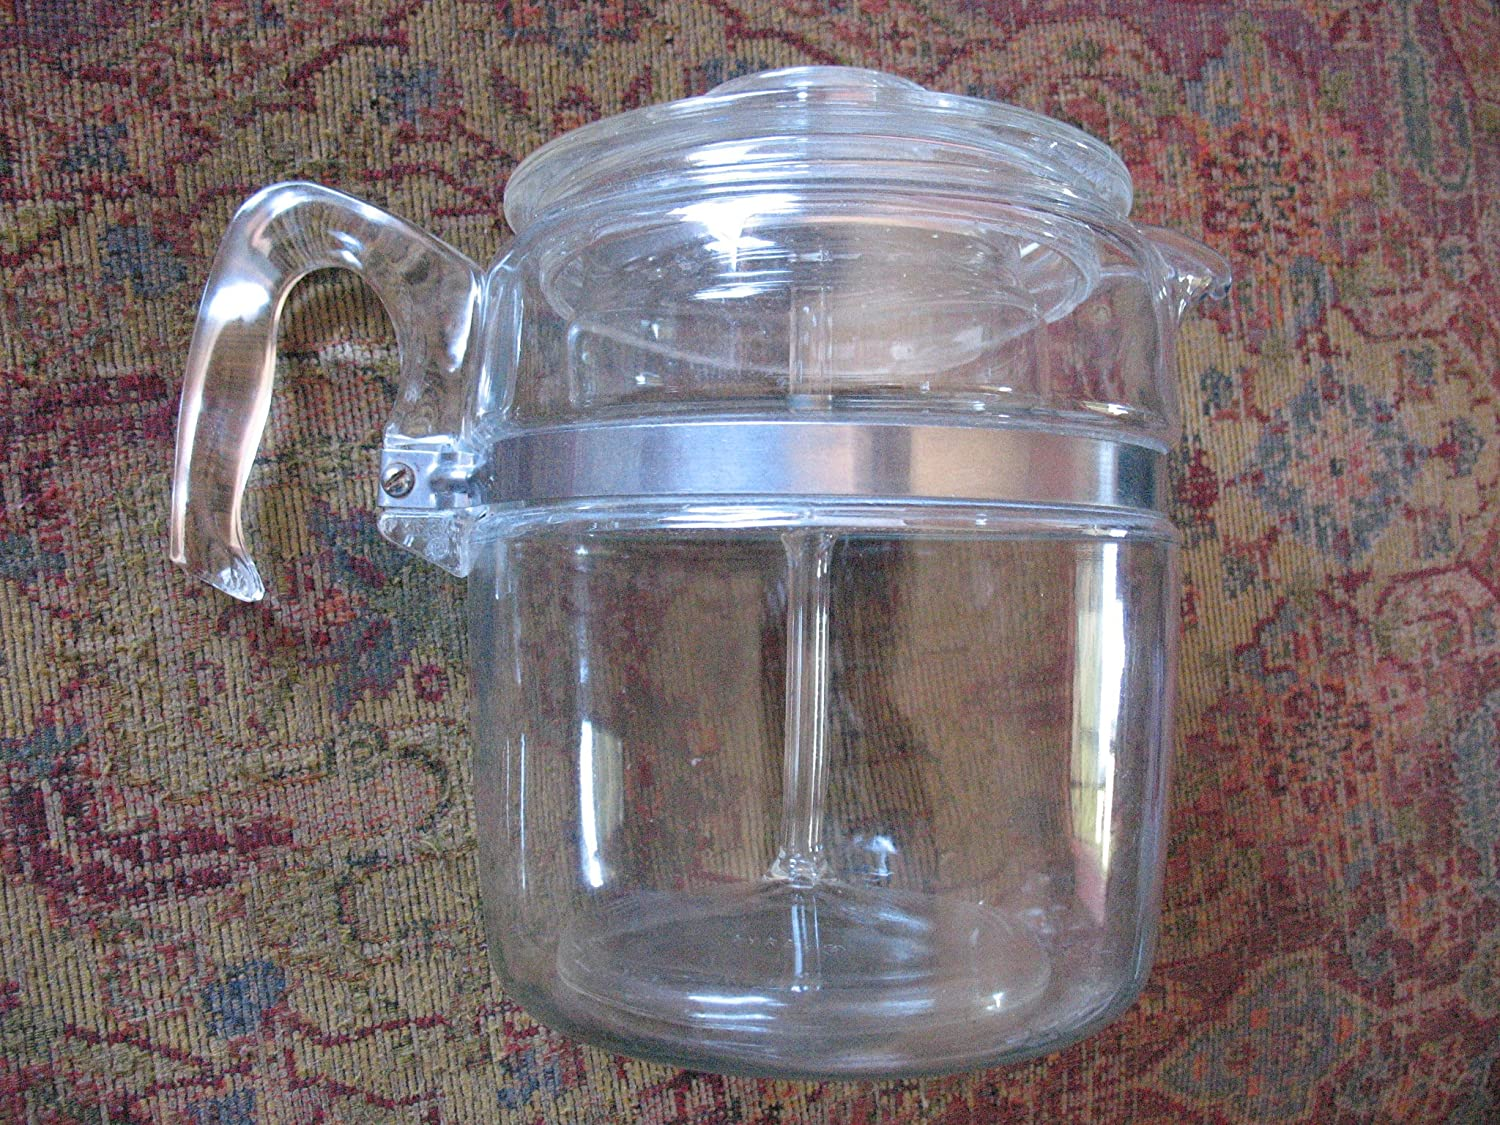 VINTAGE Corning Pyrex Flameware 9 cup Percolator Coffee Pot